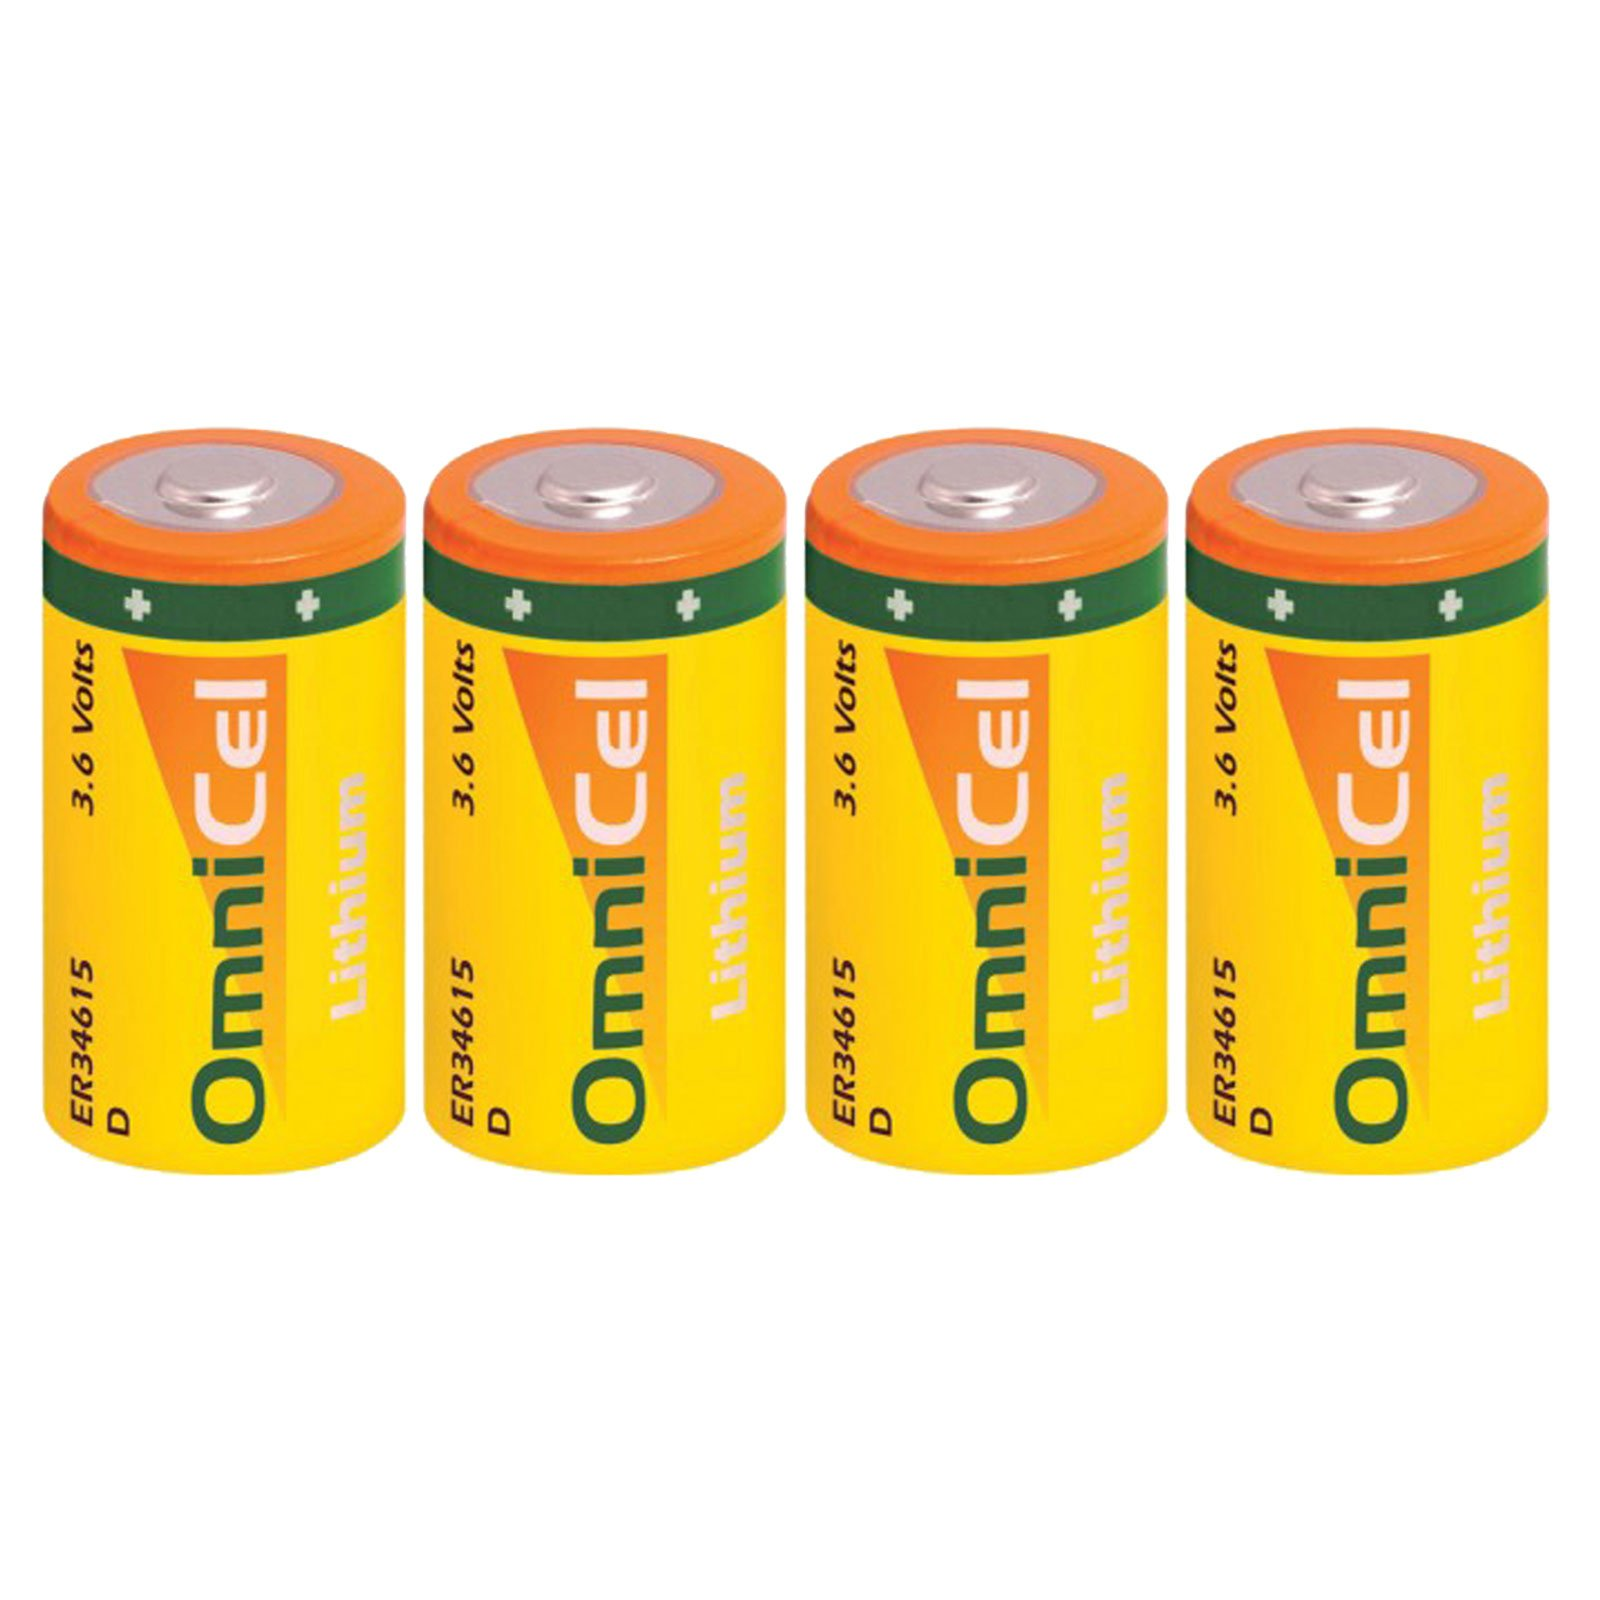 4x OmniCel ER34615 3.6 Volt 19Ah Size D Lithium Button Top Battery For Intrusion Sensors, Invisible Fencing,RFID Tracking, Asset Tracking, Theft Prevention